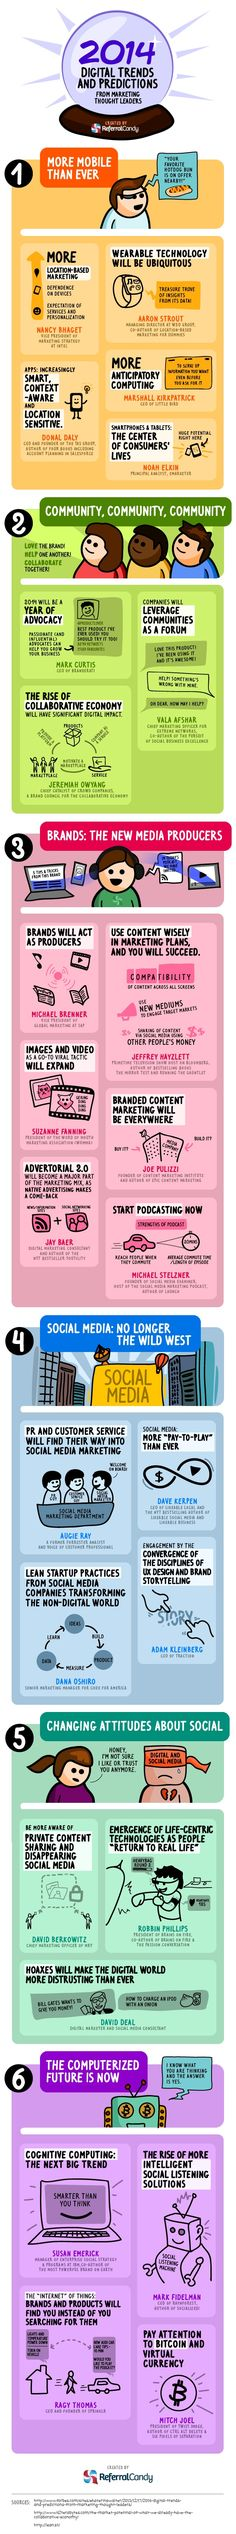 2014 digital trend predictions   The Digital Trends and Predictions We Should Expect To See In 2014